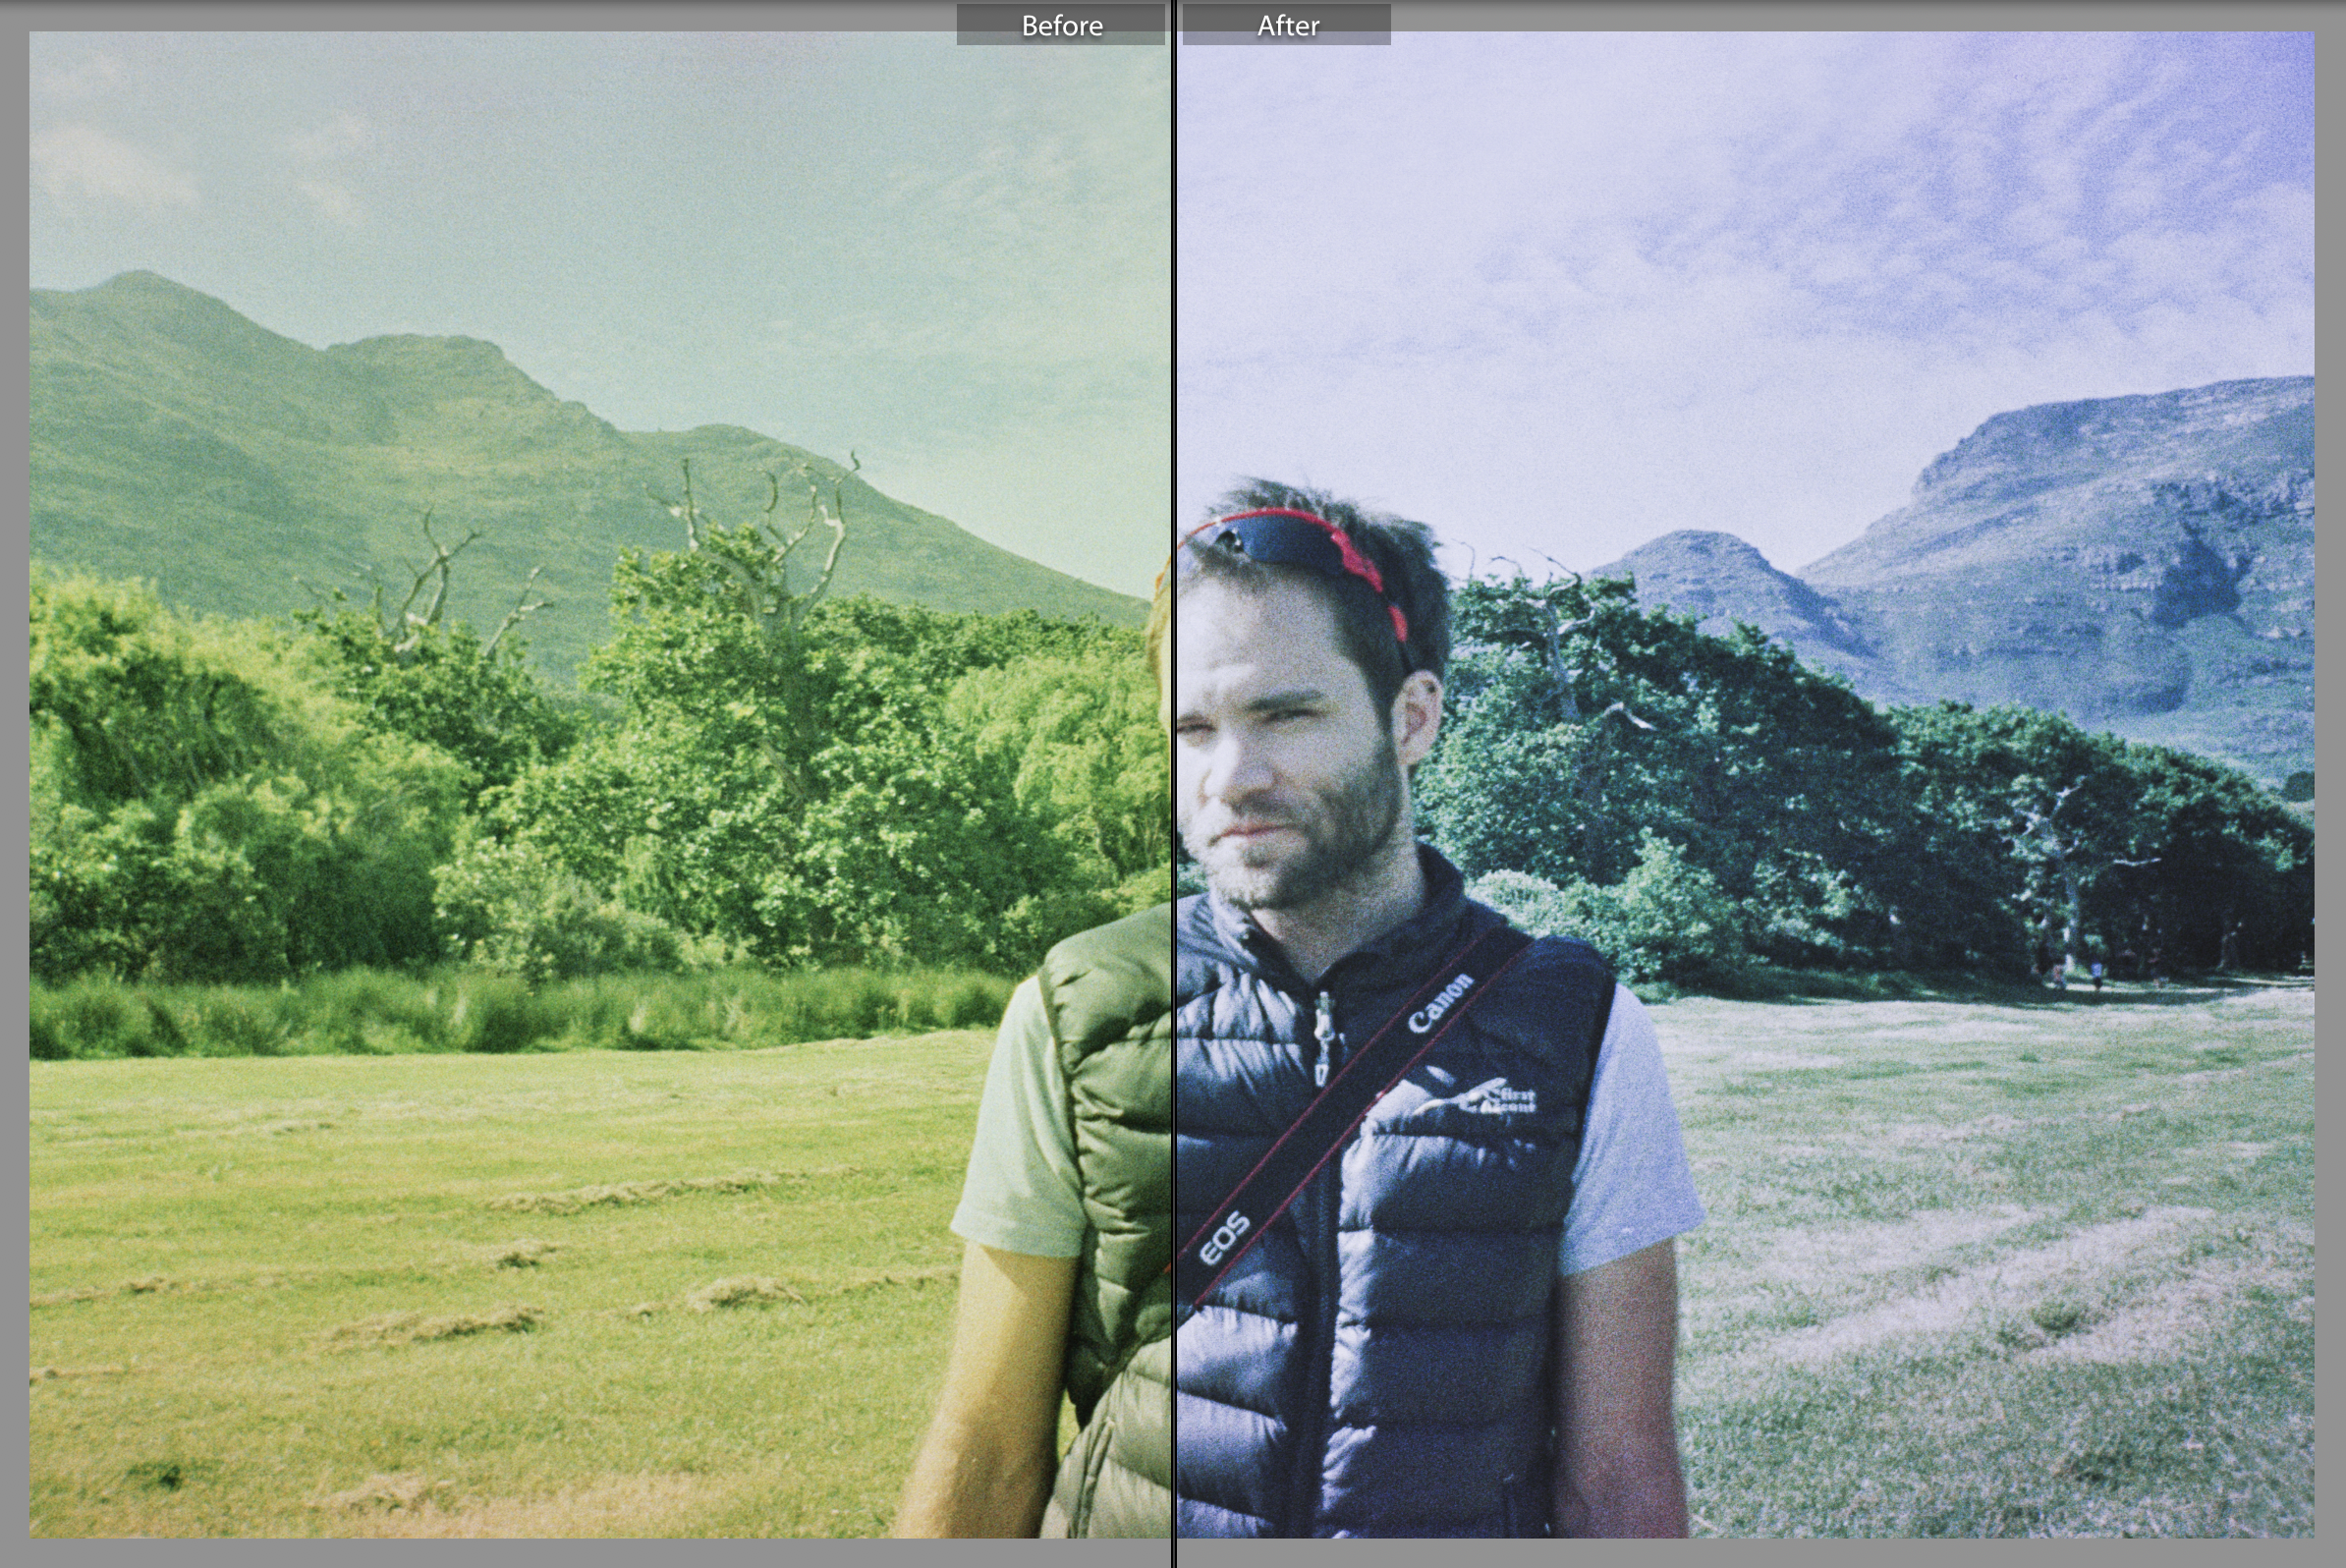 Ken Treloar Cross Process Film Fix Preset Screenshot Before After